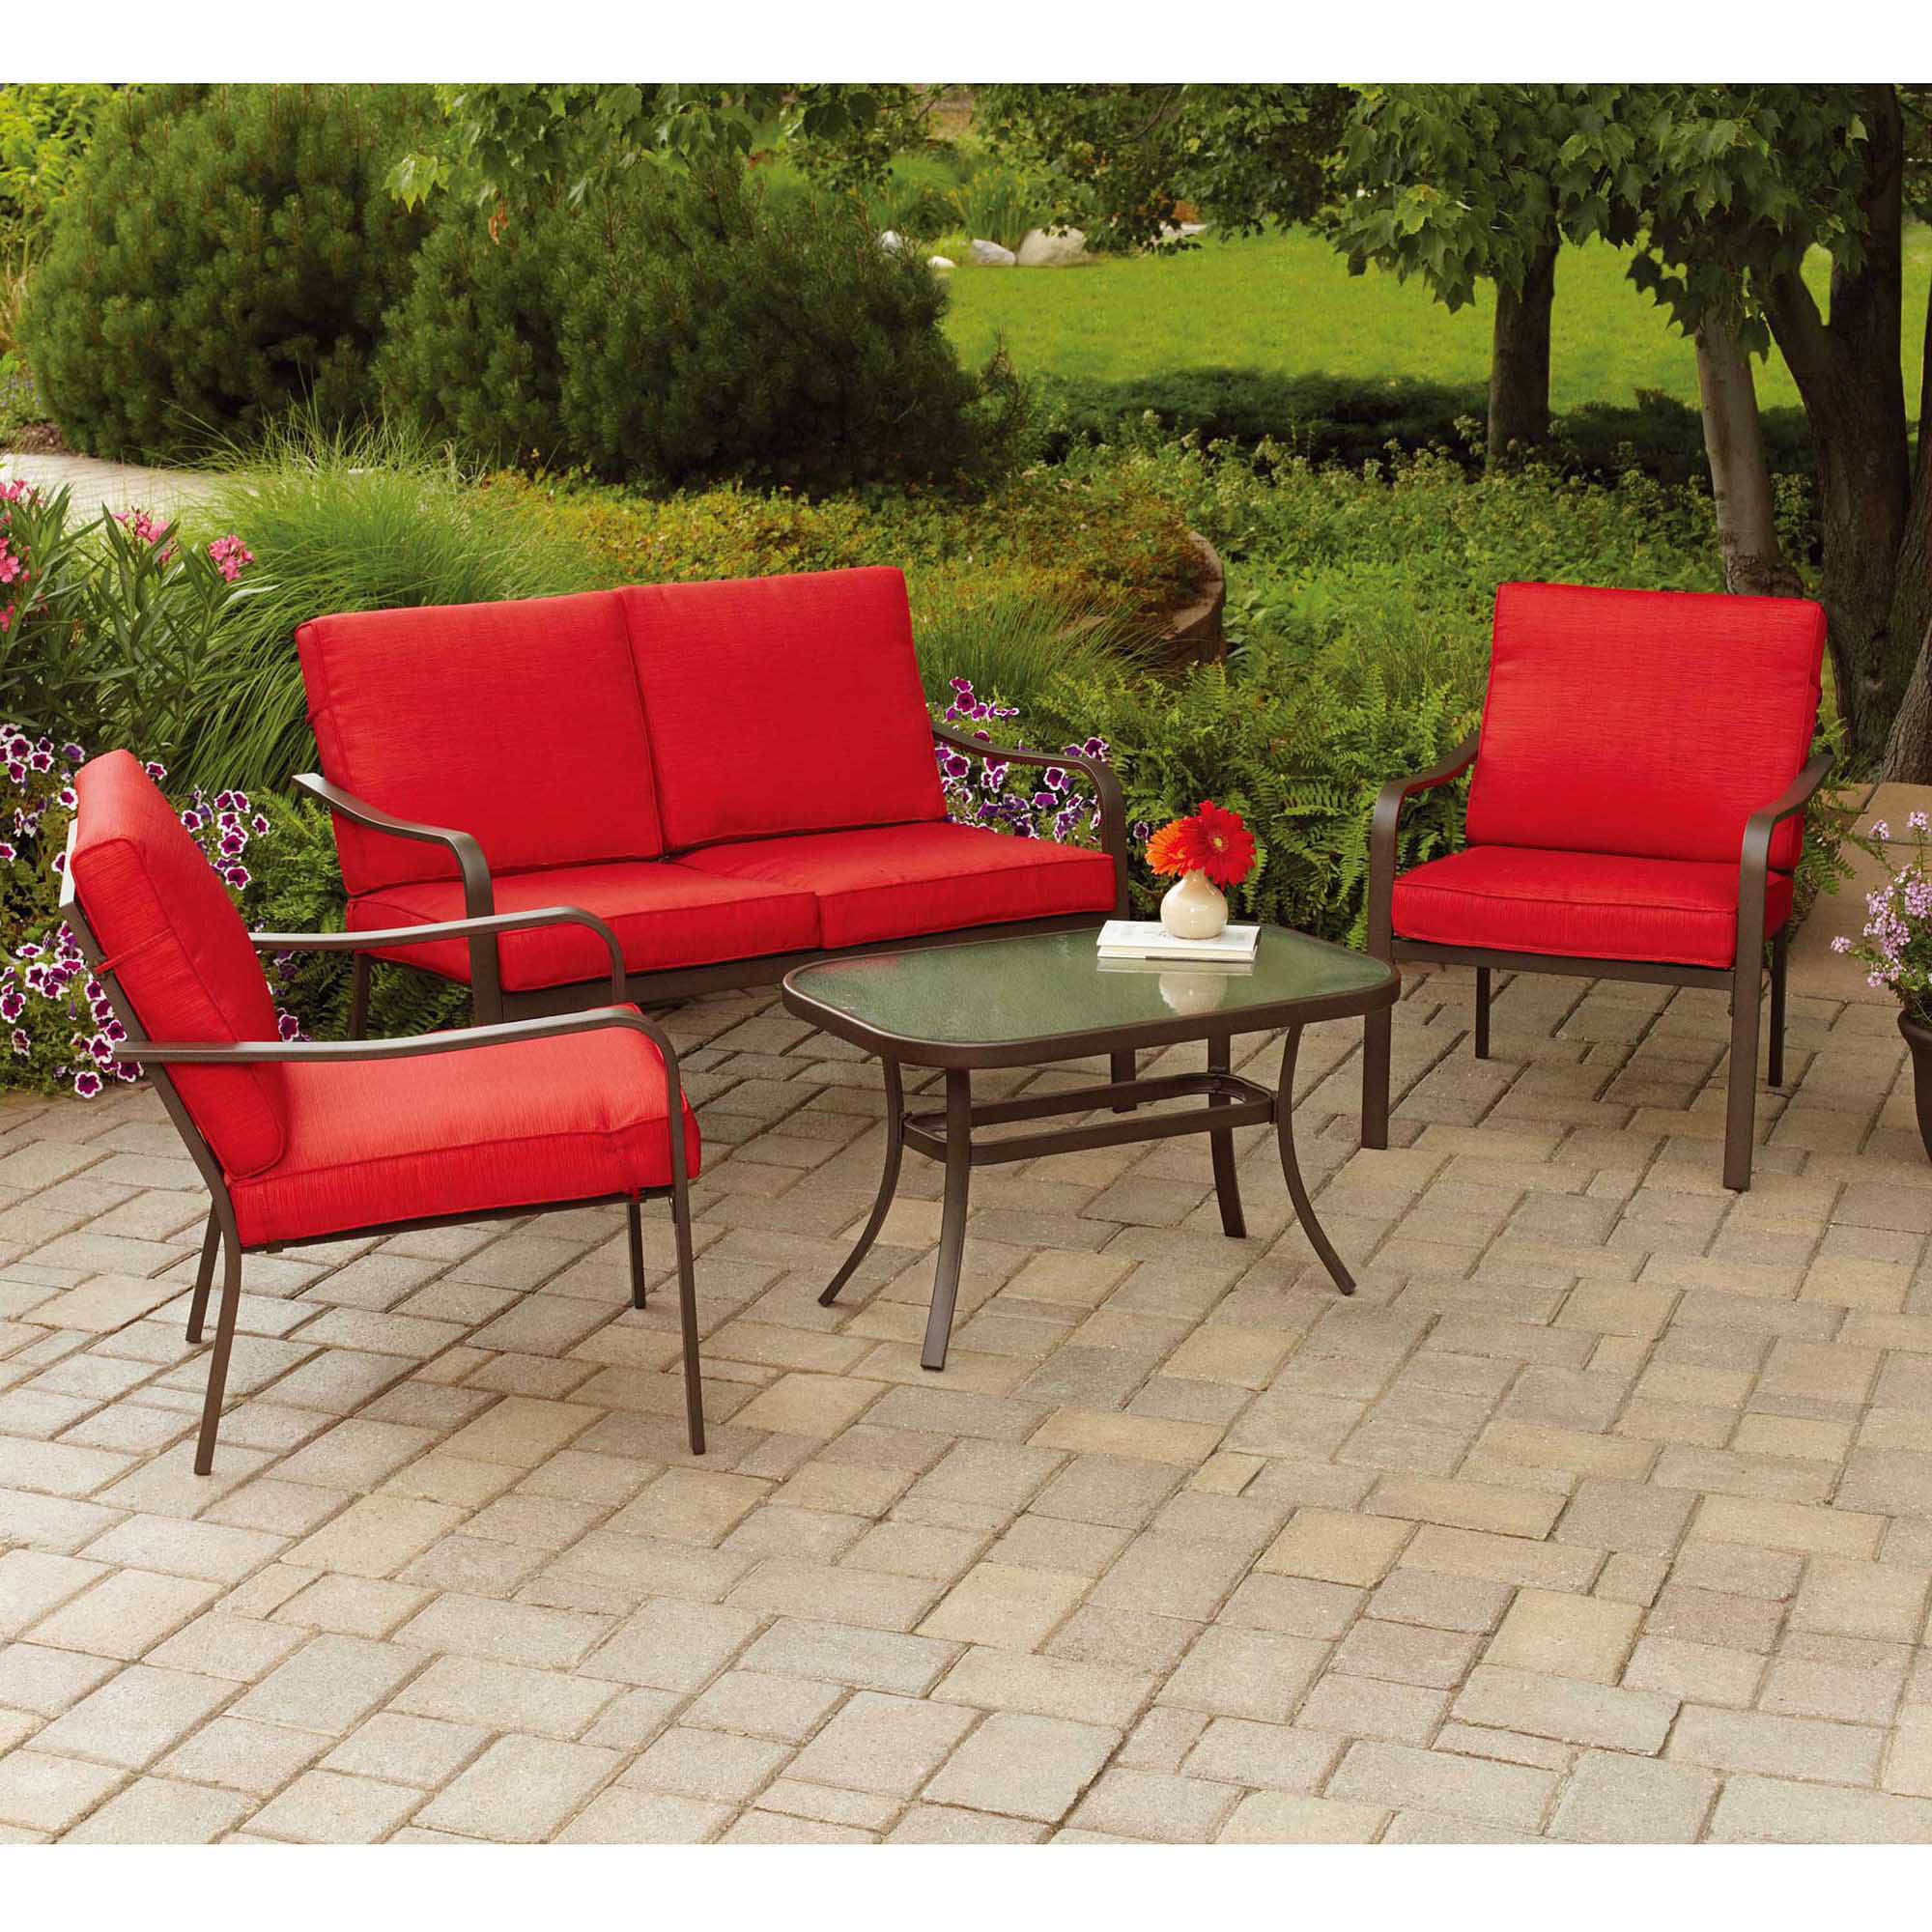 Mainstays Stanton Cushioned 4-Piece Patio Conversation Set, Red